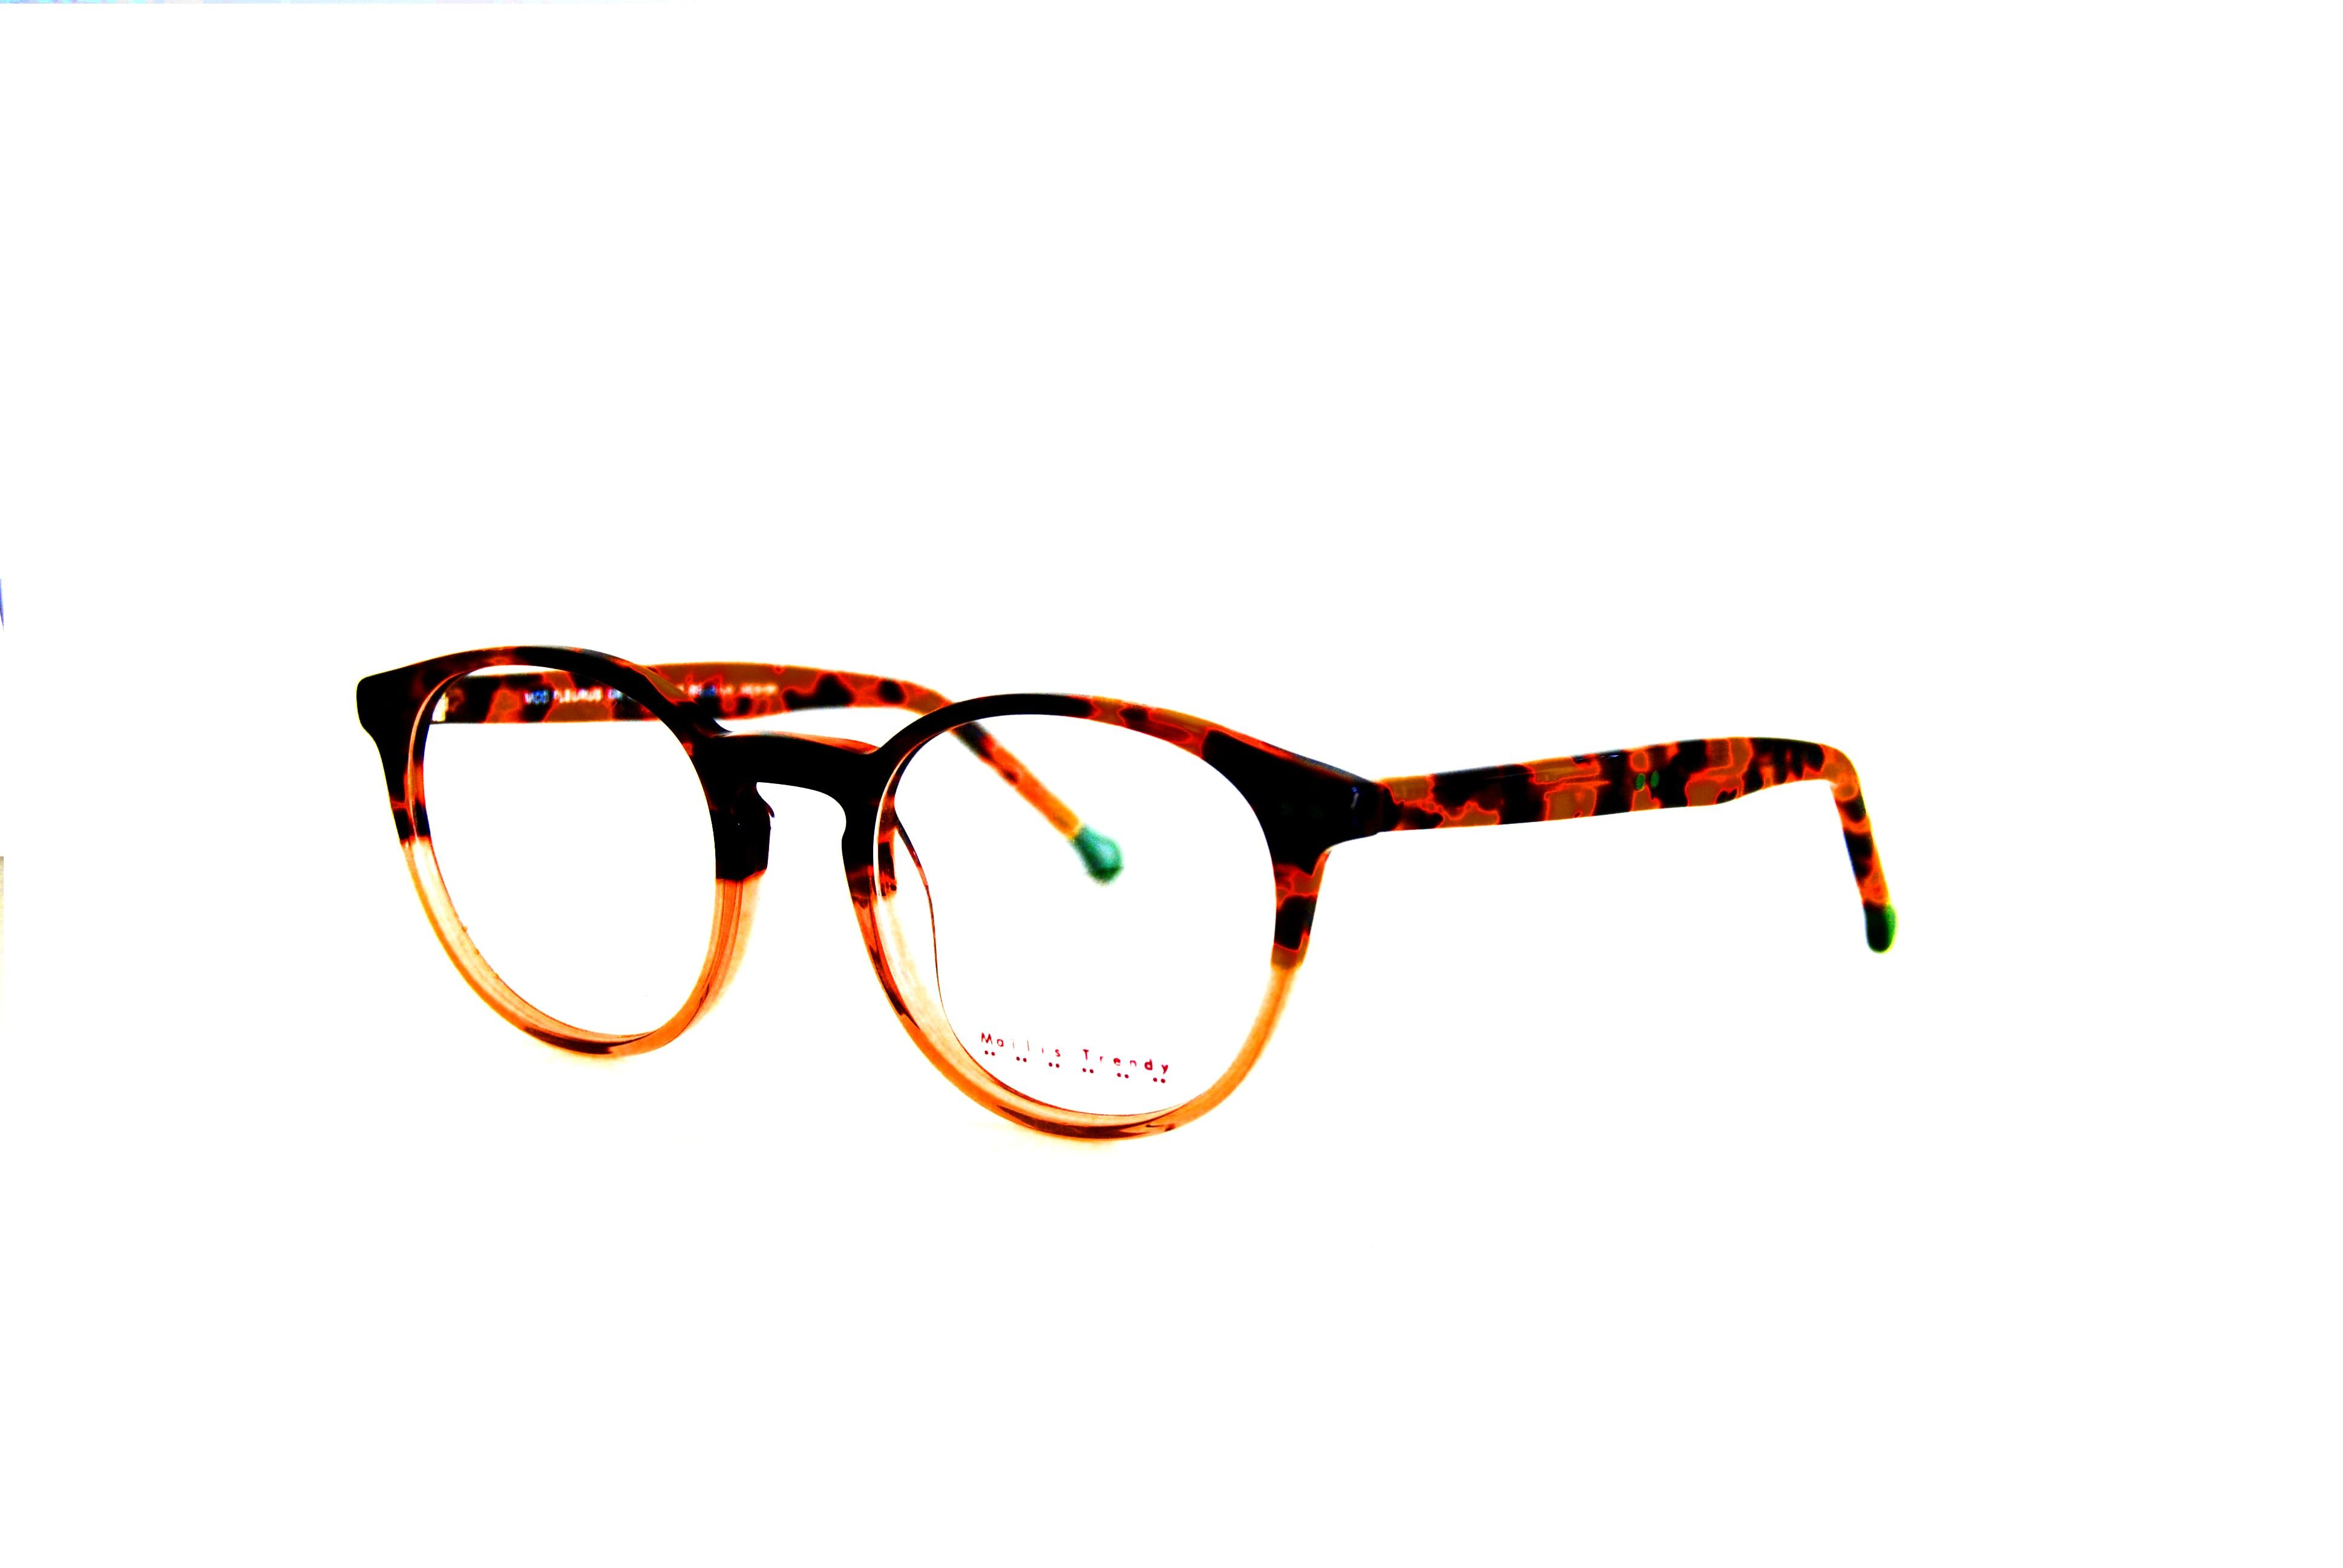 Pin by Les Opticiens Wauters-Serpieter Signature on OFD Vision ...